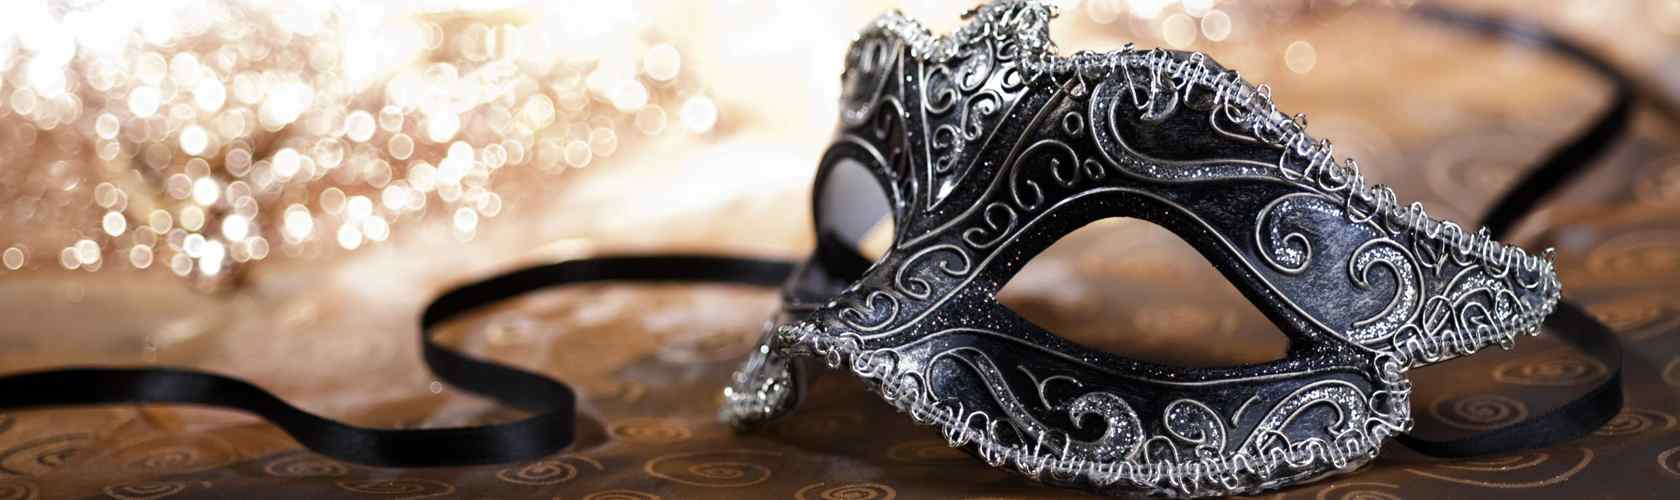 Ornamental Masquerade Mask 923.79 Kb